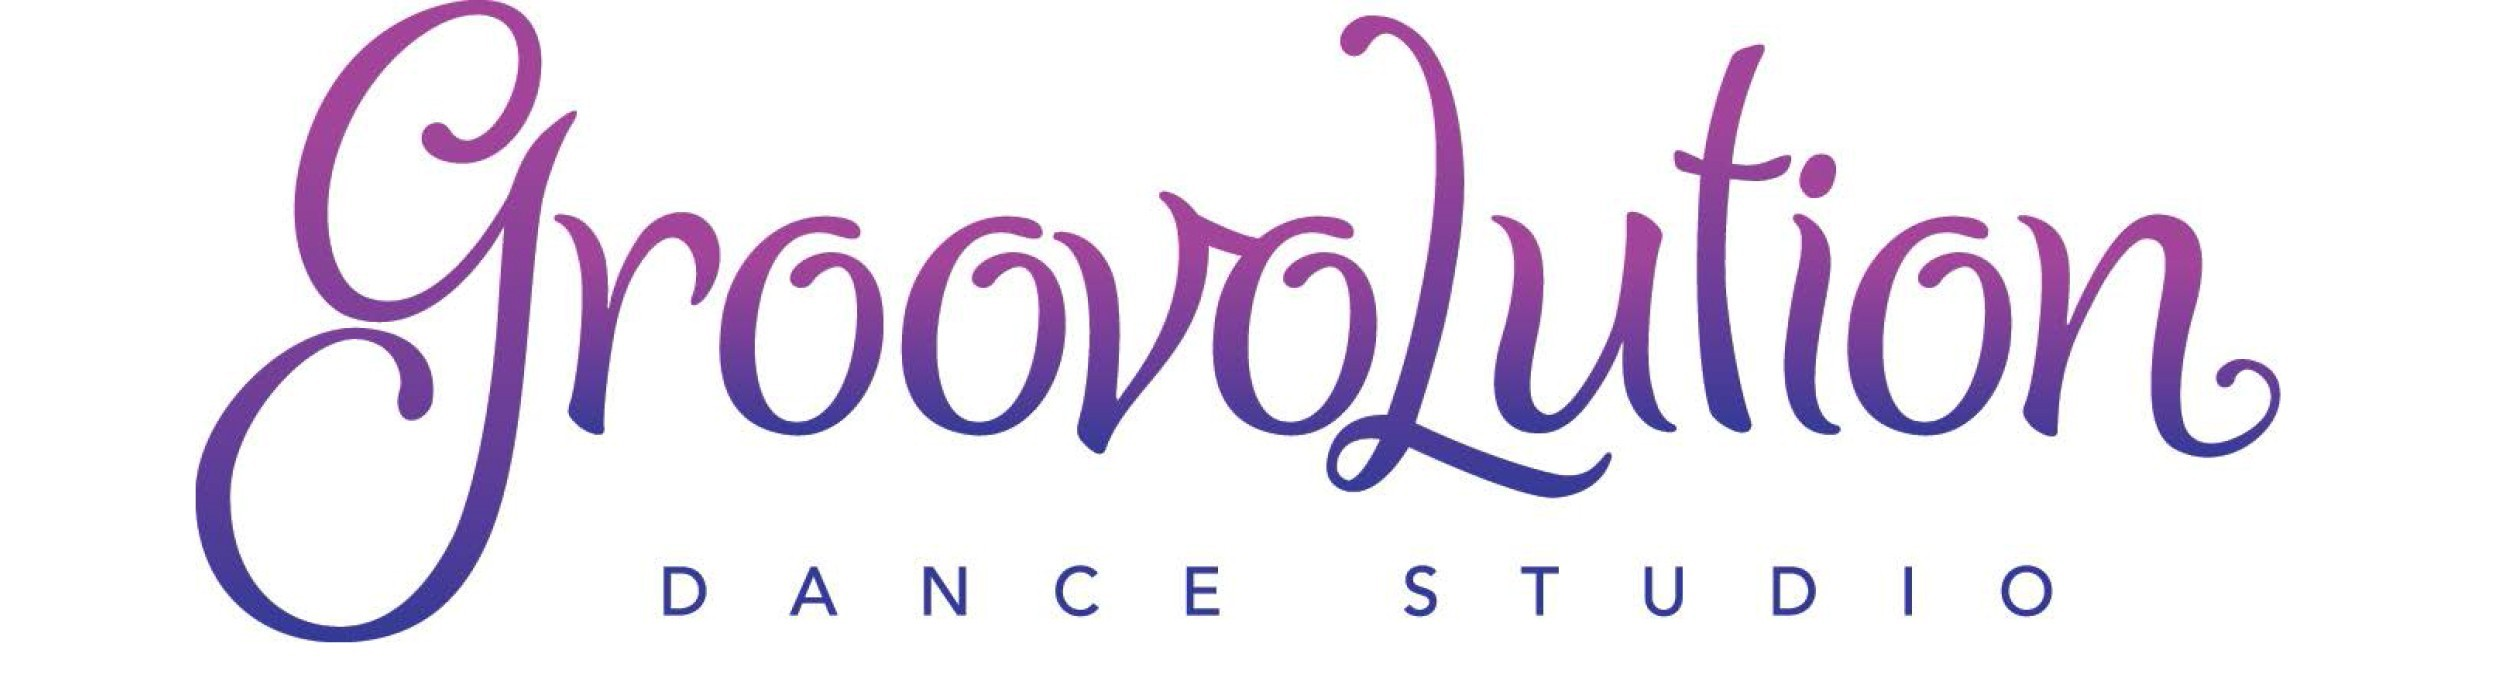 Groovolution Dance Studio